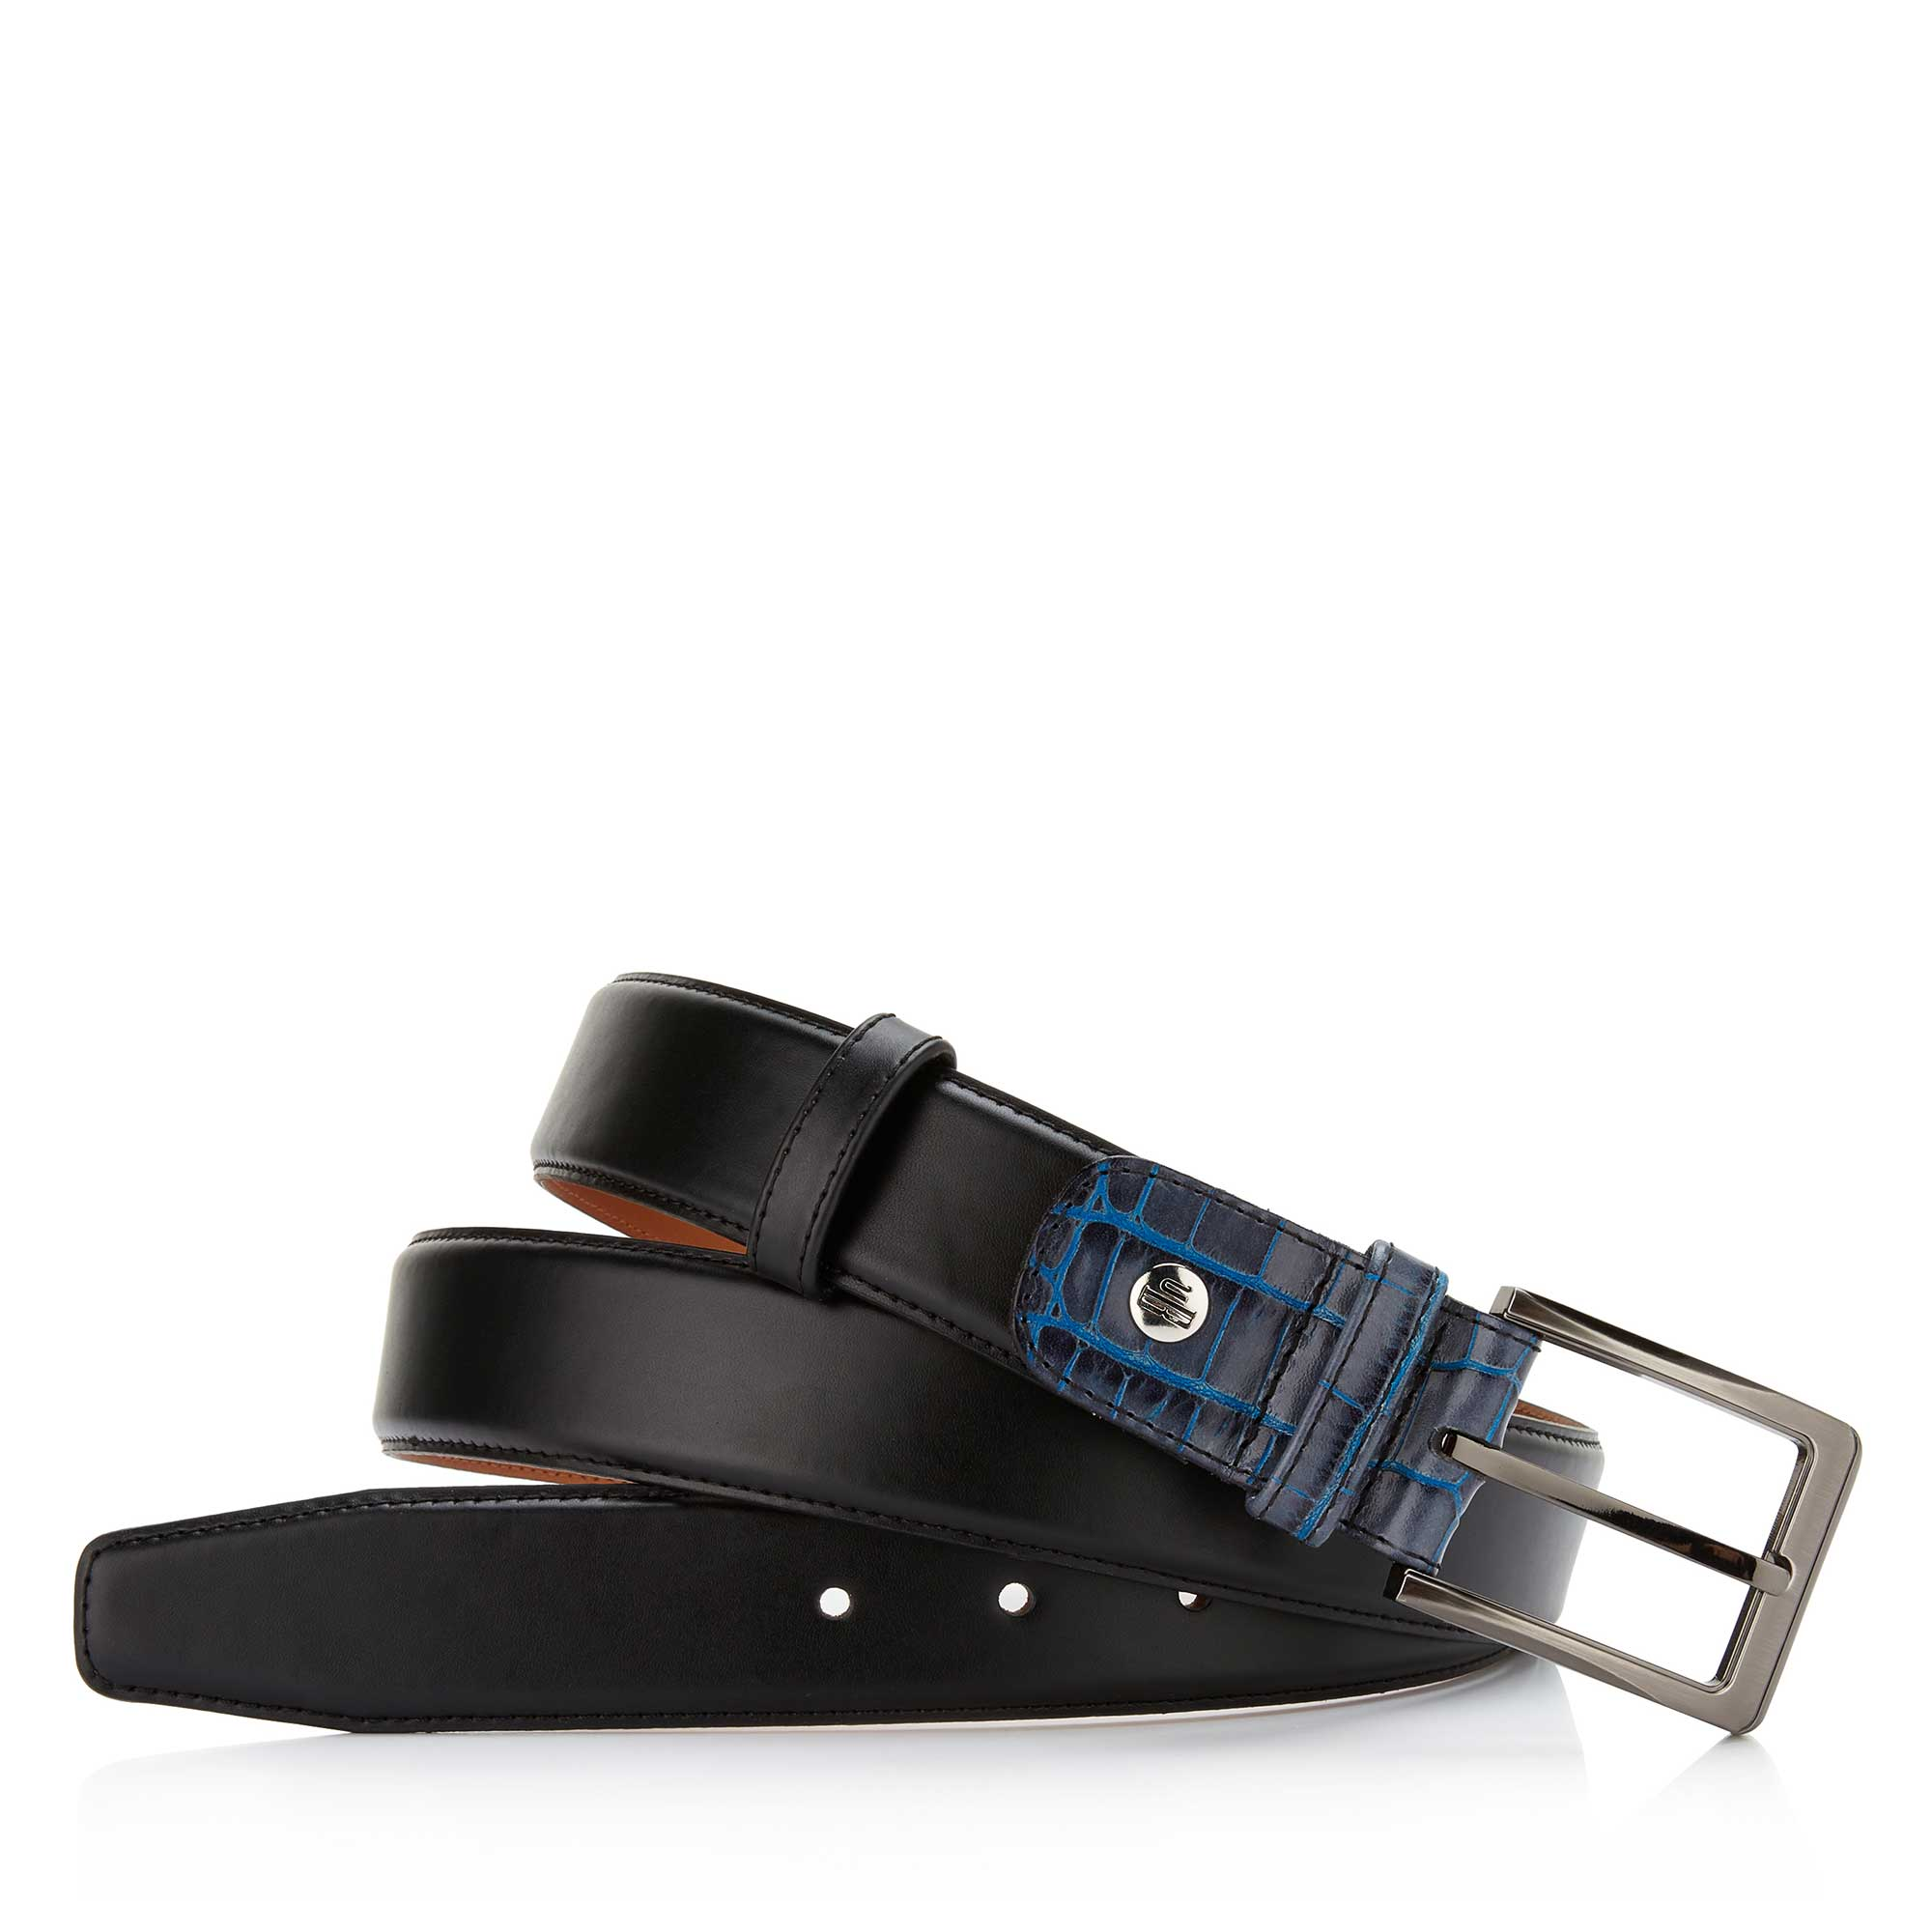 75055/01 - Floris van Bommel black leather men's belt